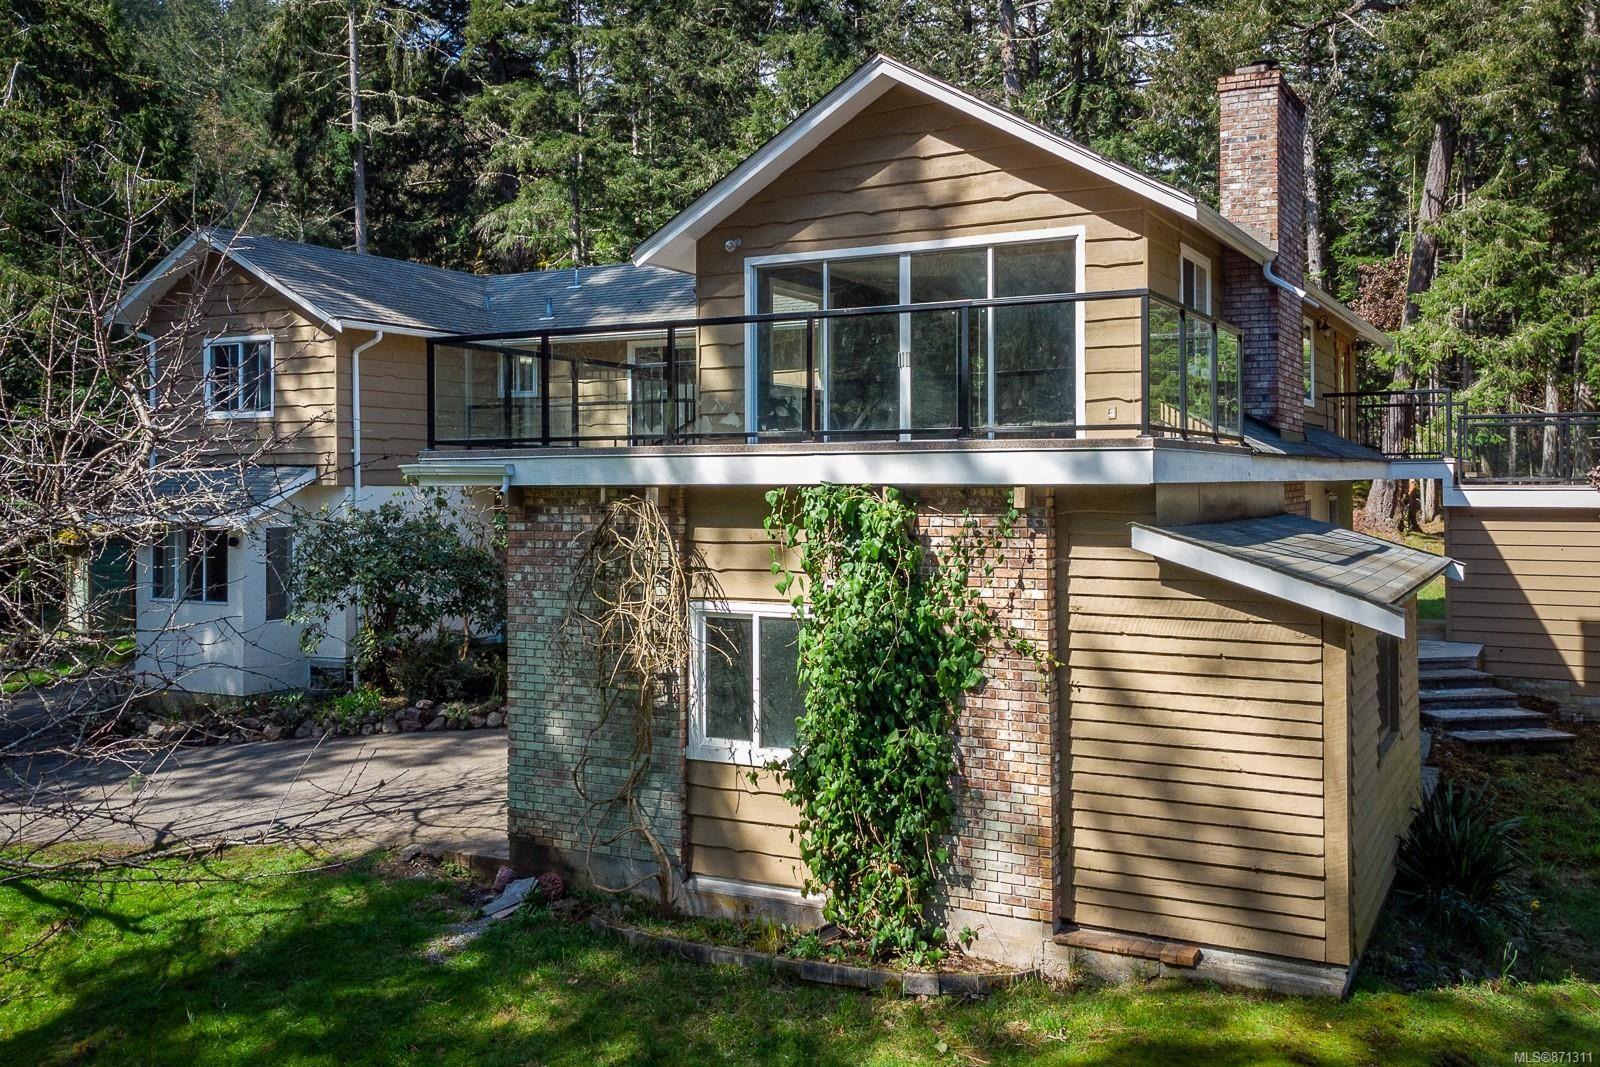 Main Photo: 1075 Matheson Lake Park Rd in : Me Pedder Bay House for sale (Metchosin)  : MLS®# 871311